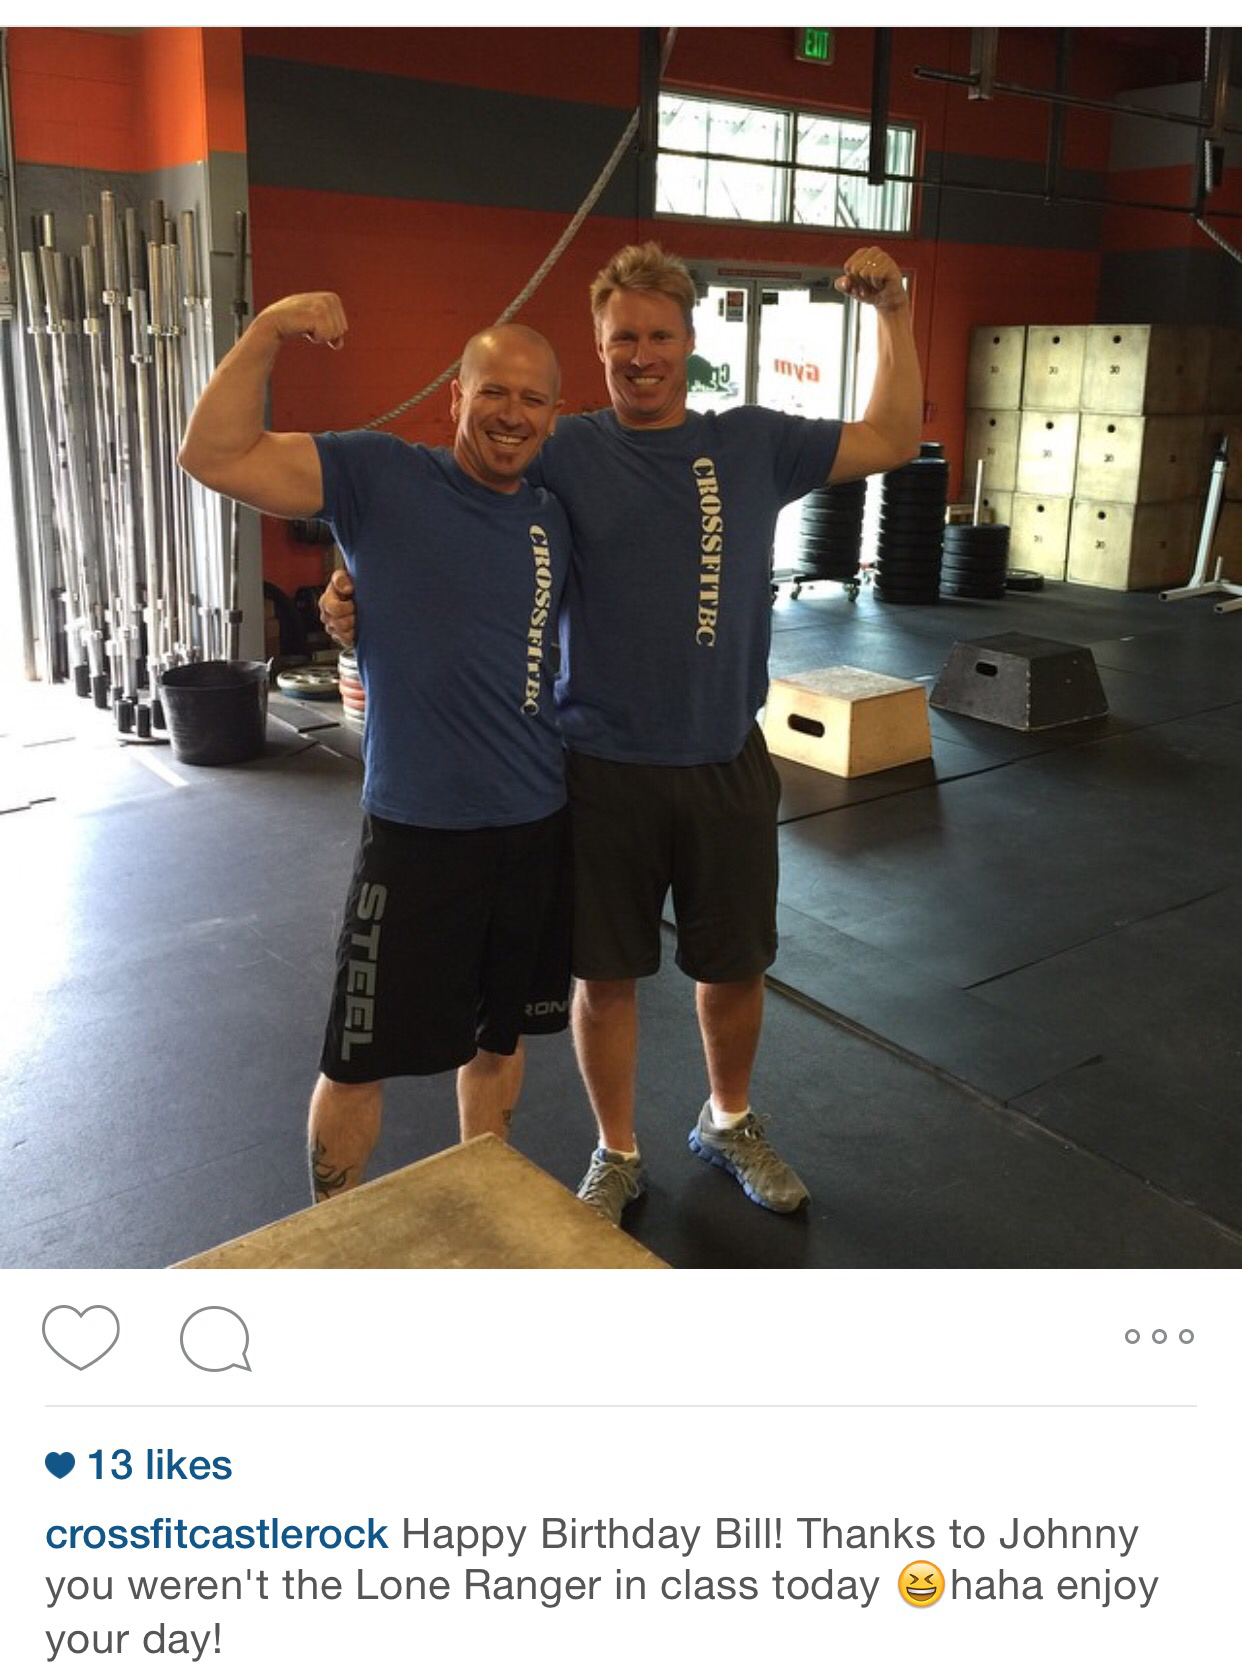 Uncategorized Archives - Page 443 of 576 - CrossFit BC